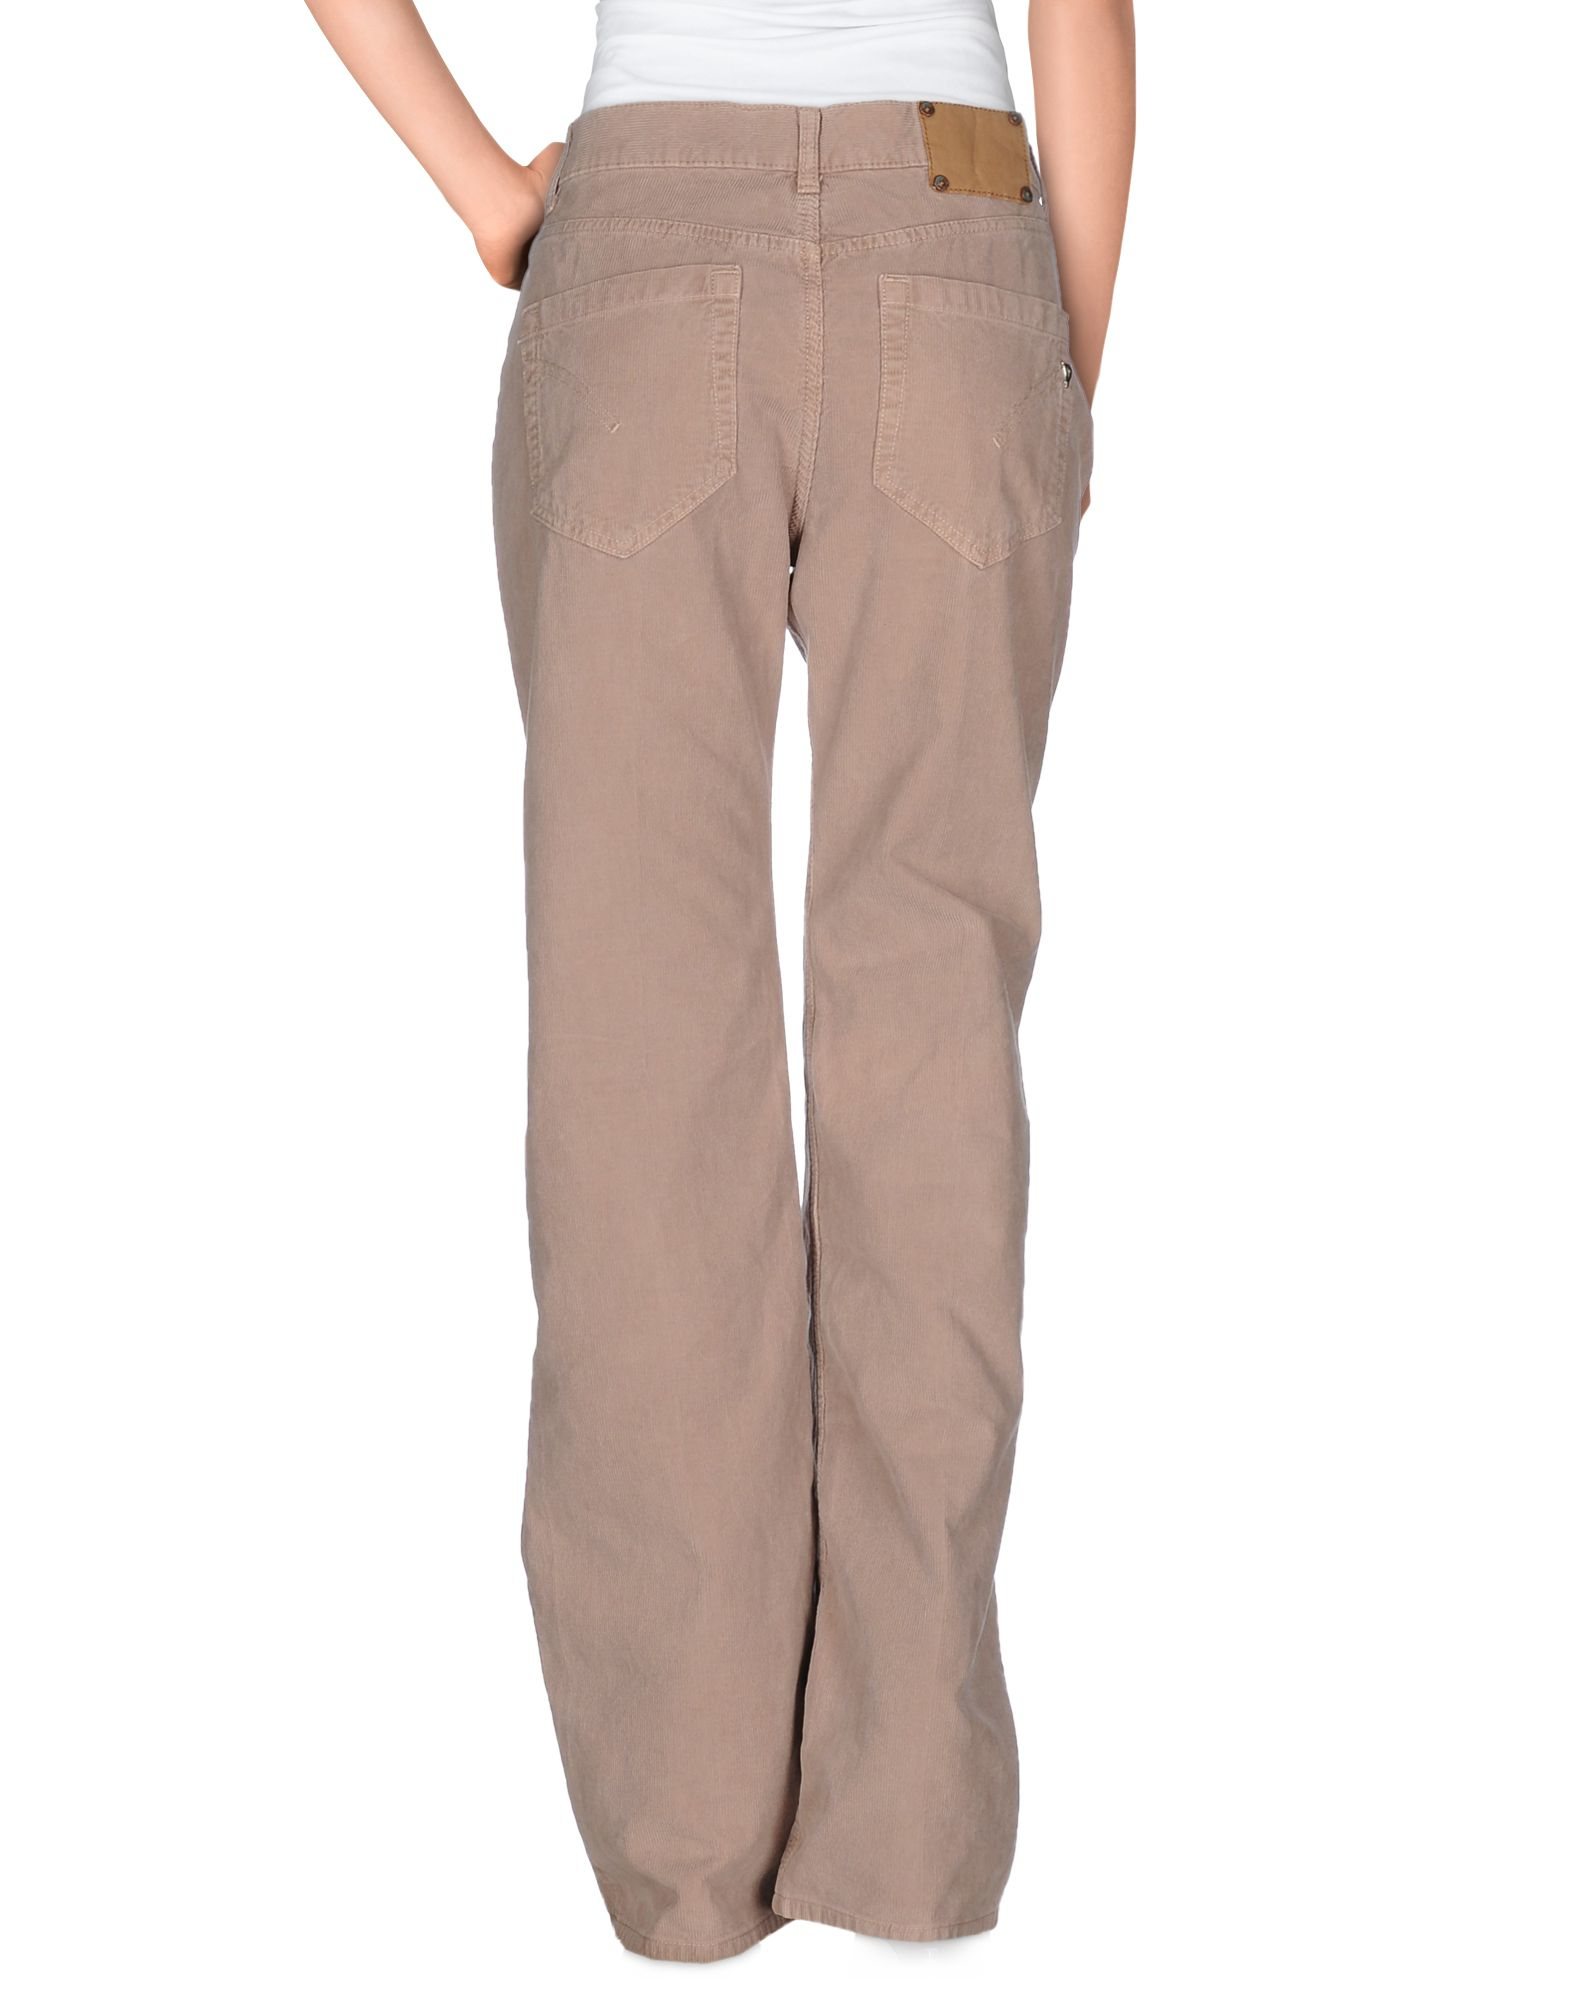 Skinny cropped pants offer classic style, perfect with ballet flats or pumps. Cozy women's sweatpants and lounge pants can help you relax at home. Run after kids in stretchy women's pants or find the perfect pair of